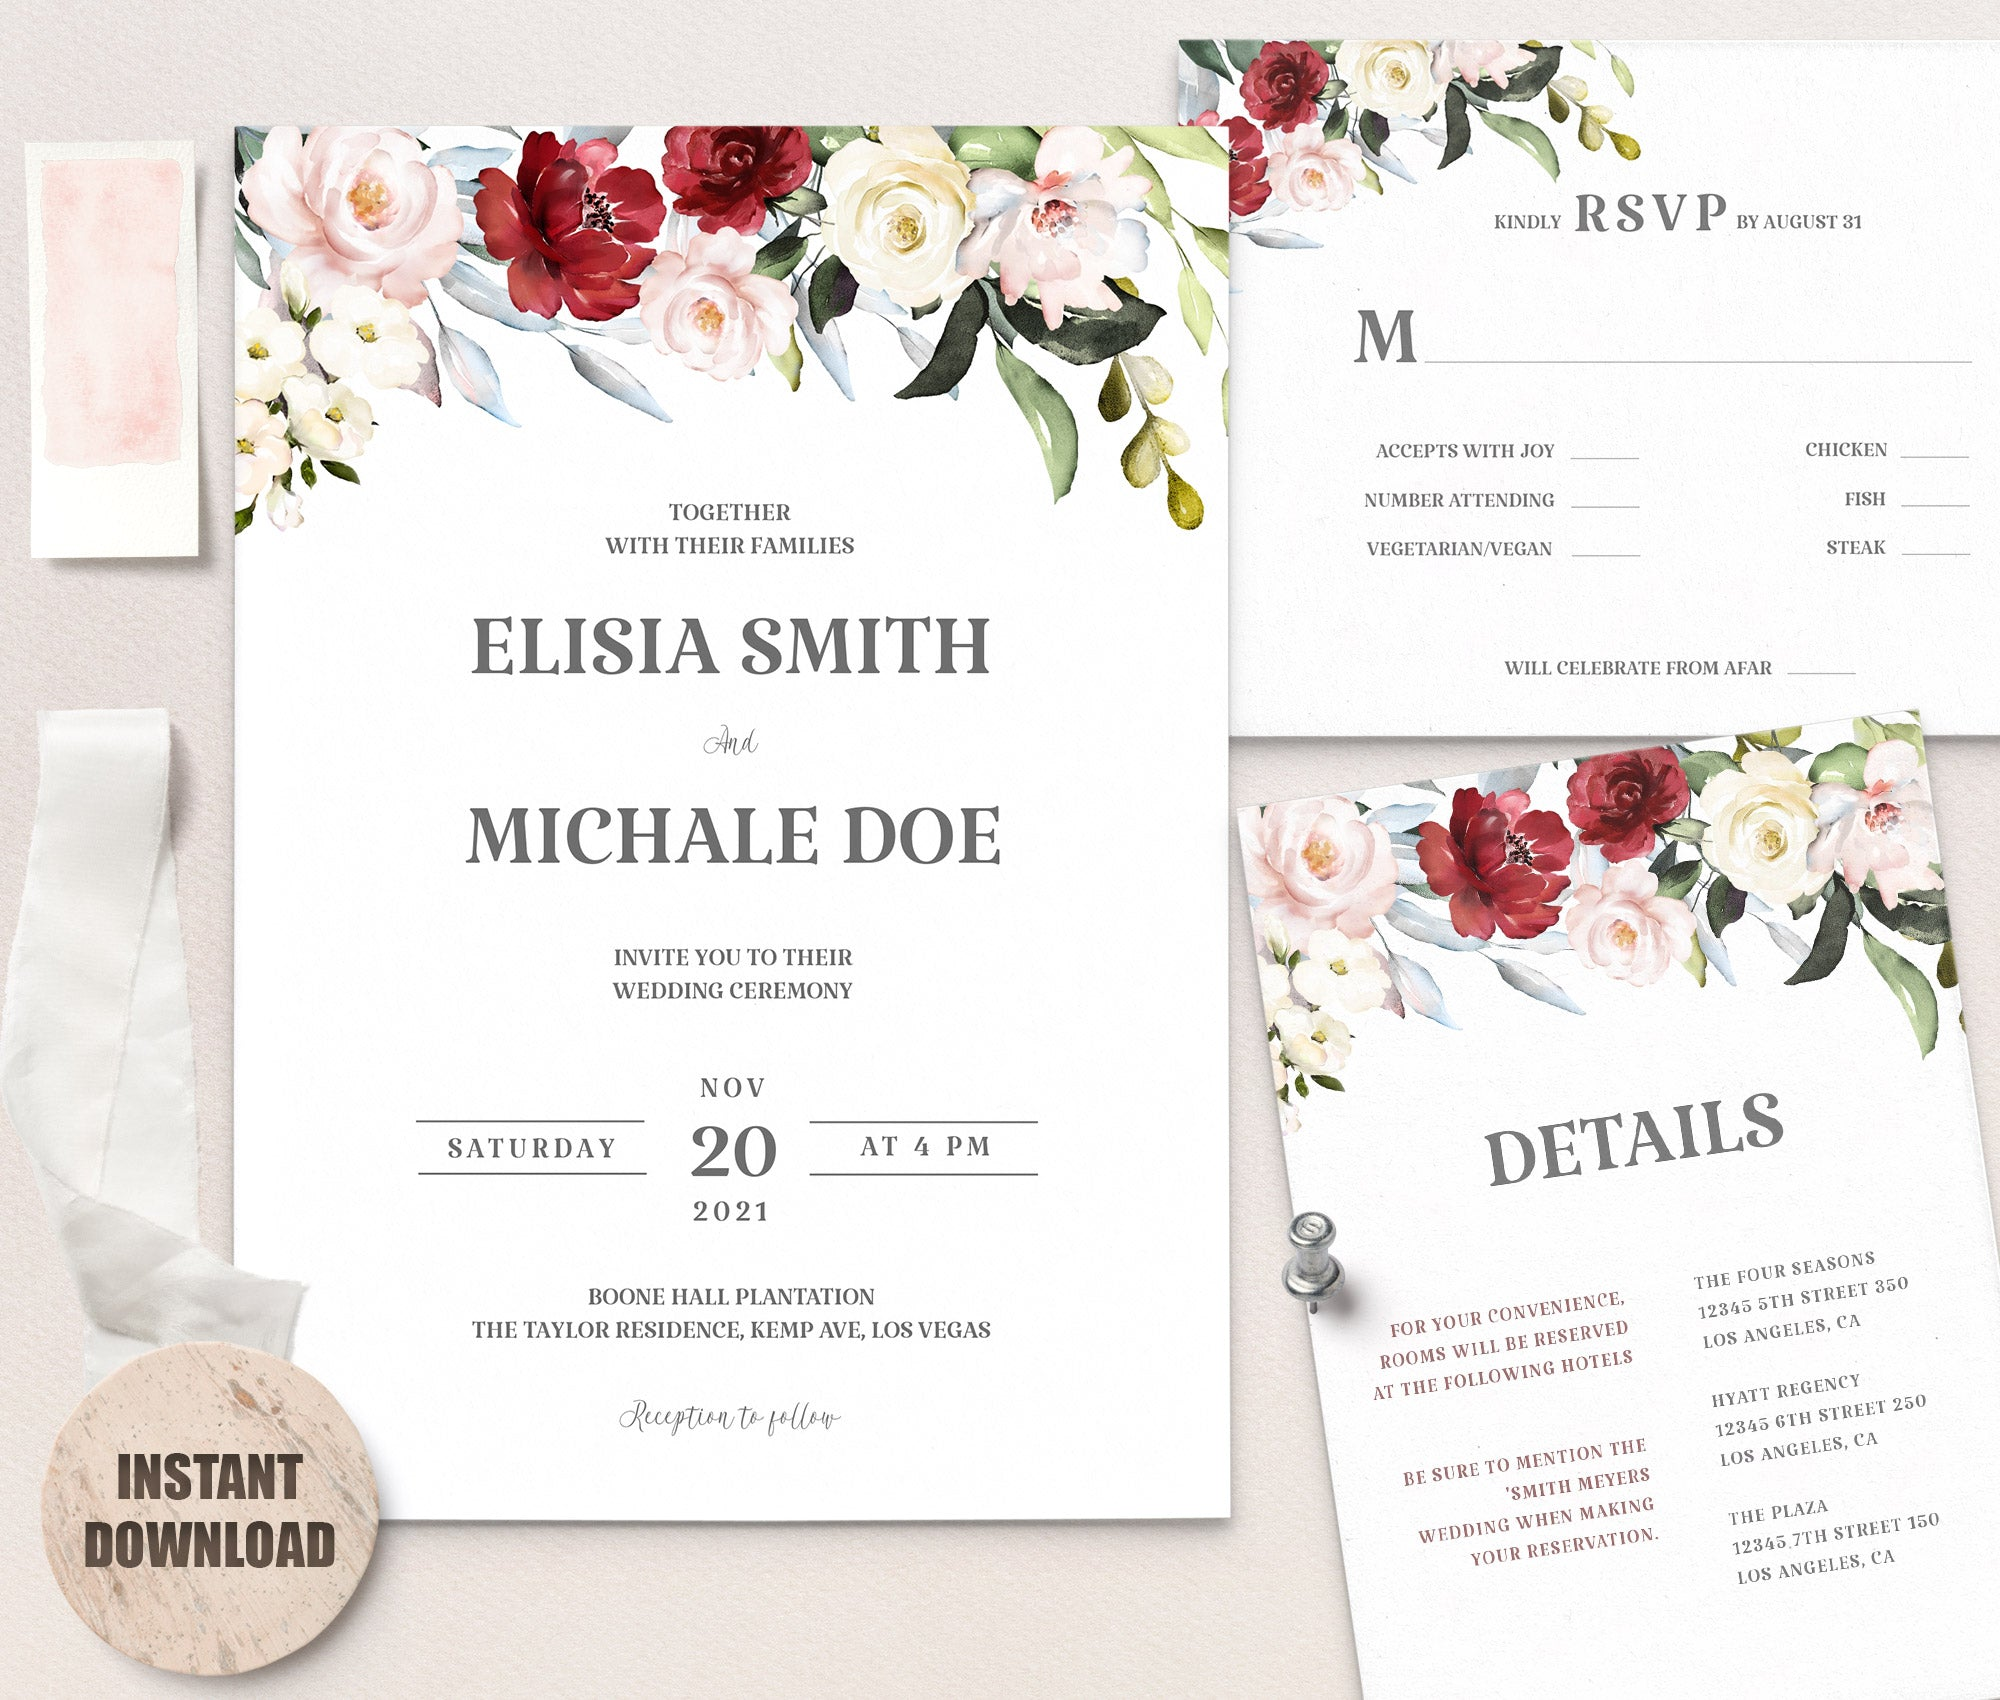 LOVAL Wedding Template Bundles set 2